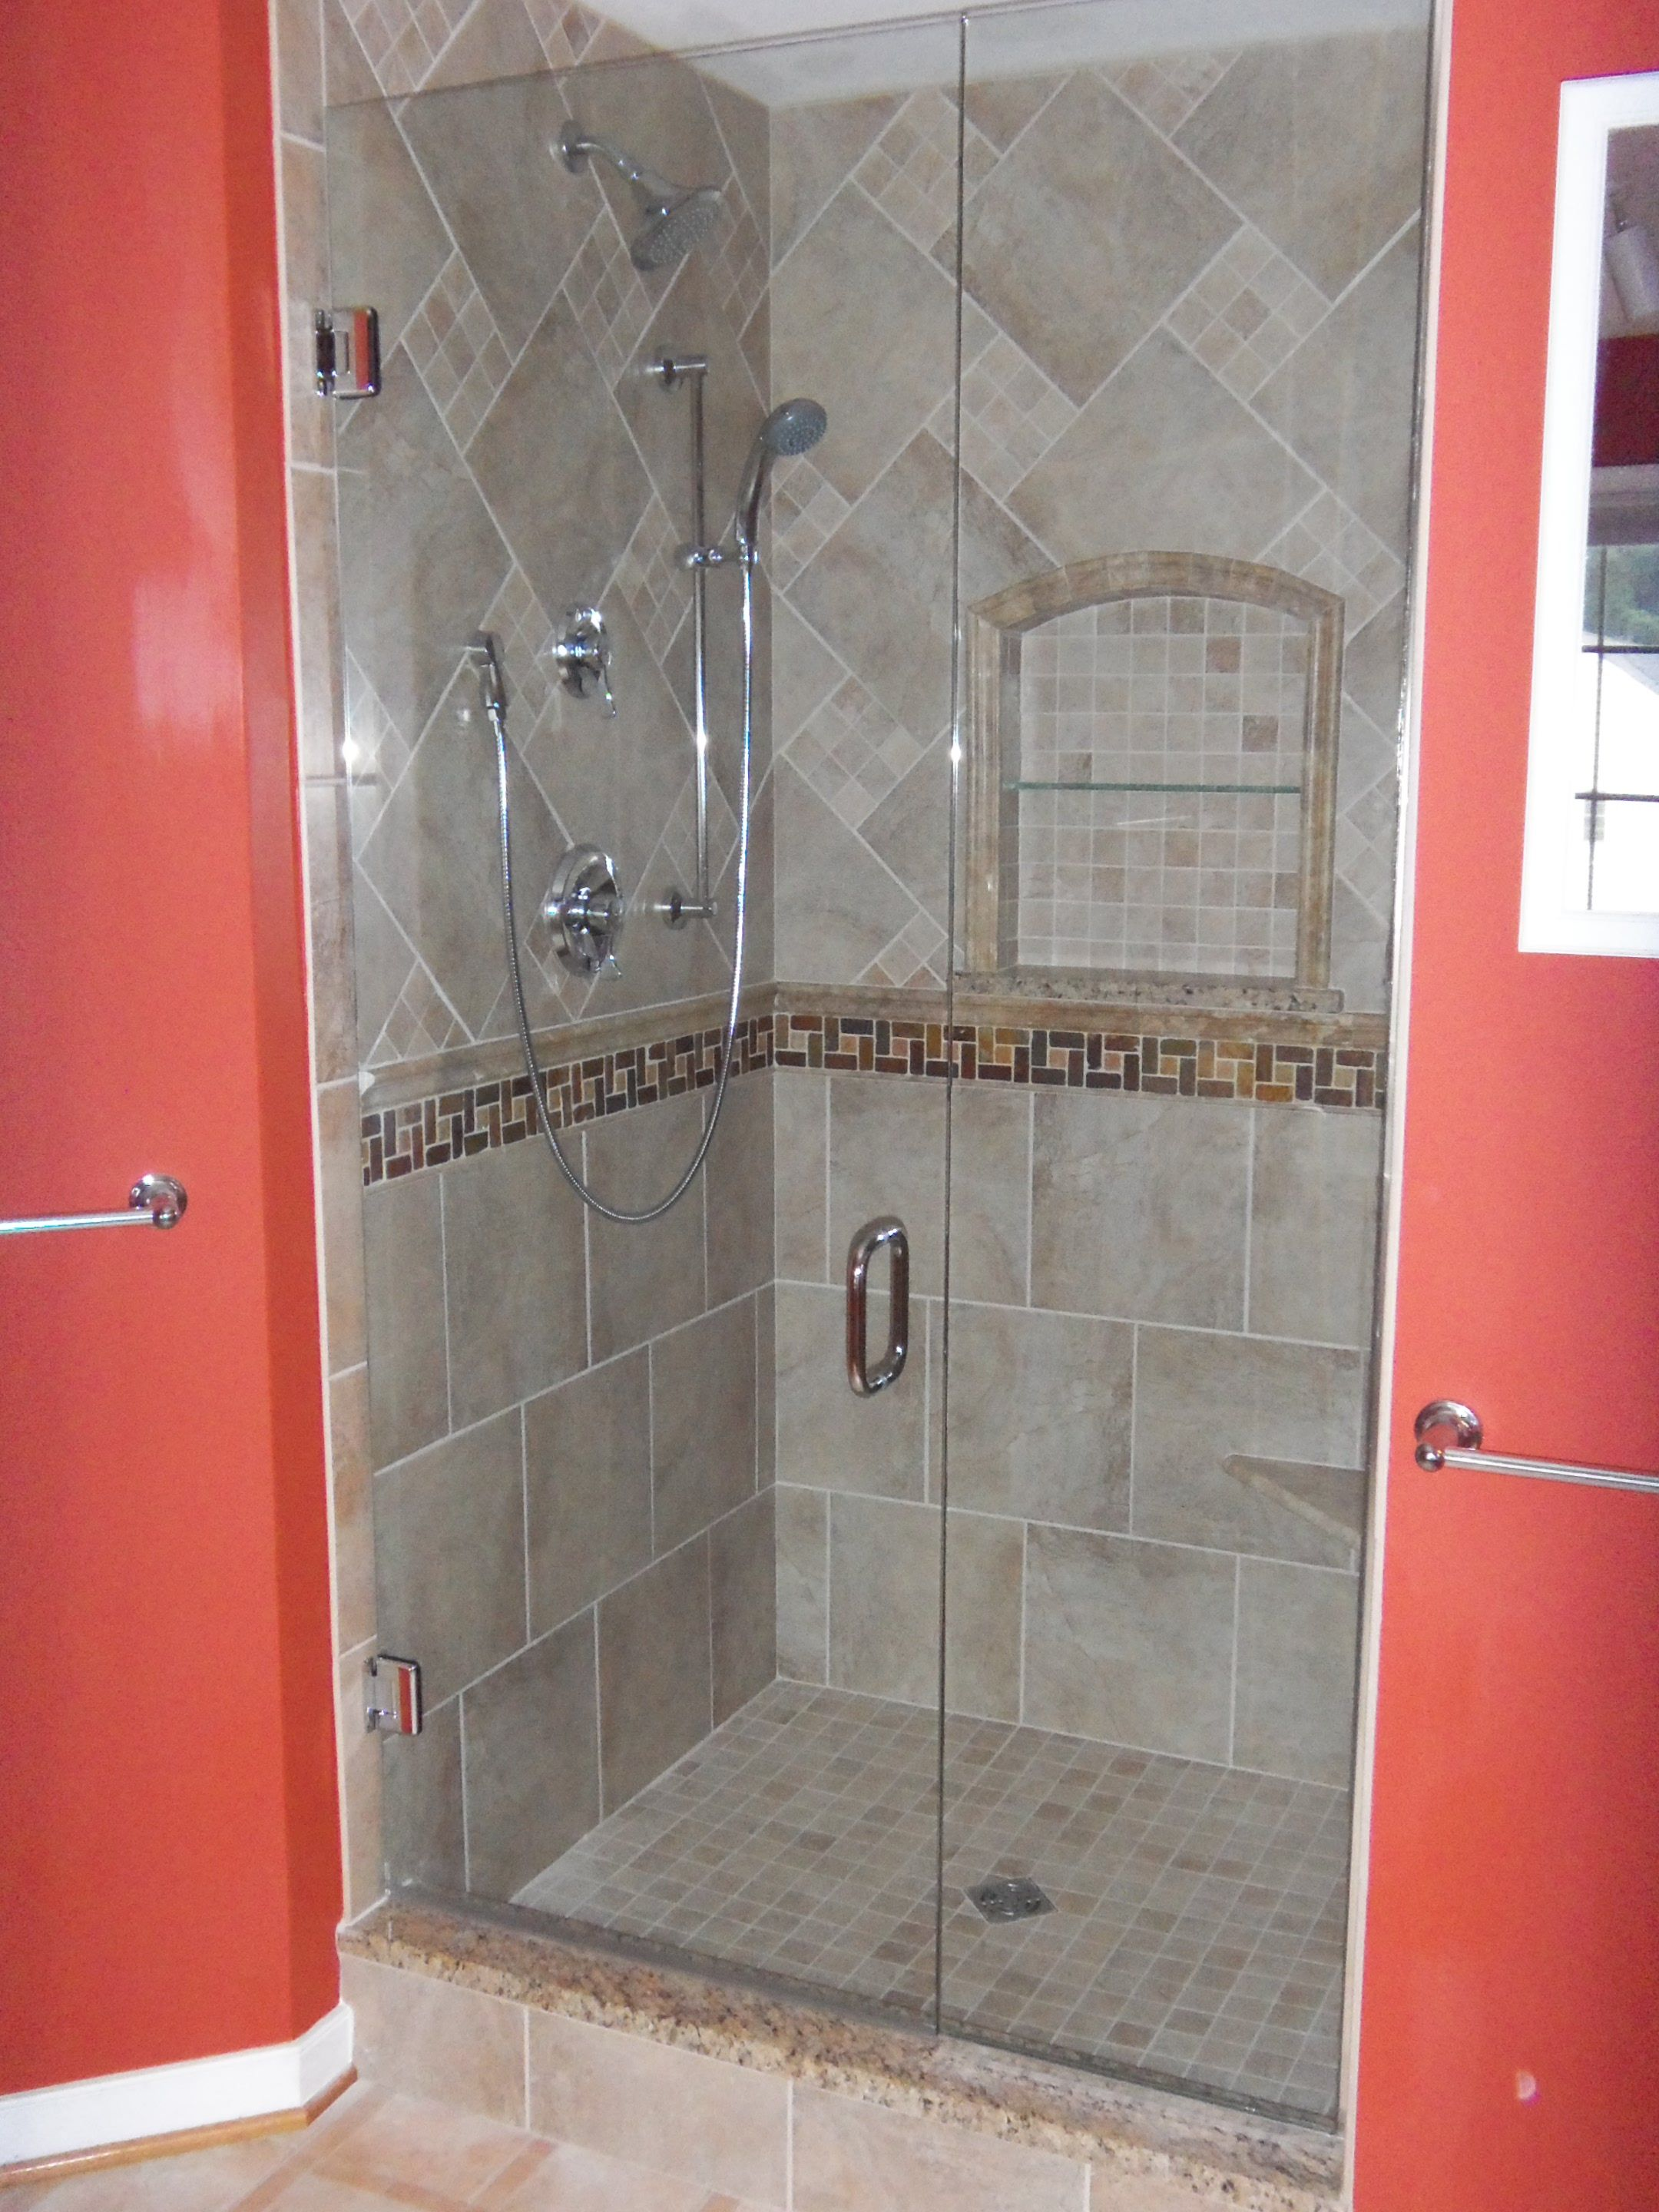 Chic Red Bifold Bathroom Door With Stainless Steel Pull Out Handle Also Chrome Steam Head Shower